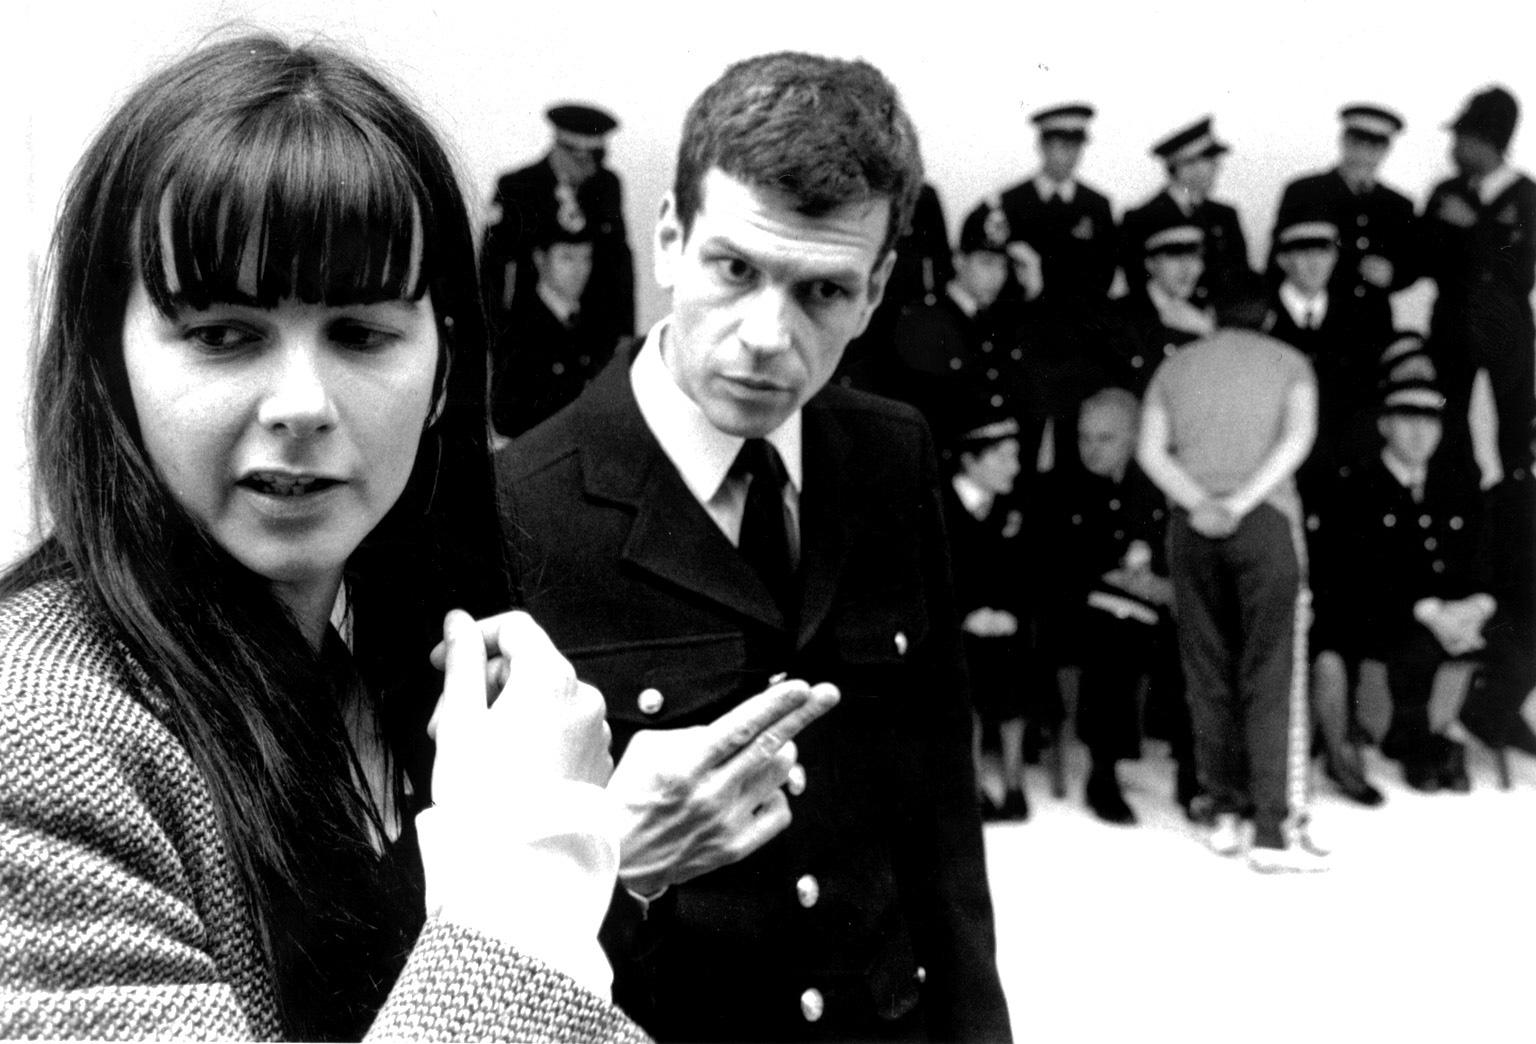 Gillian Wearing with the police officers in the 90s